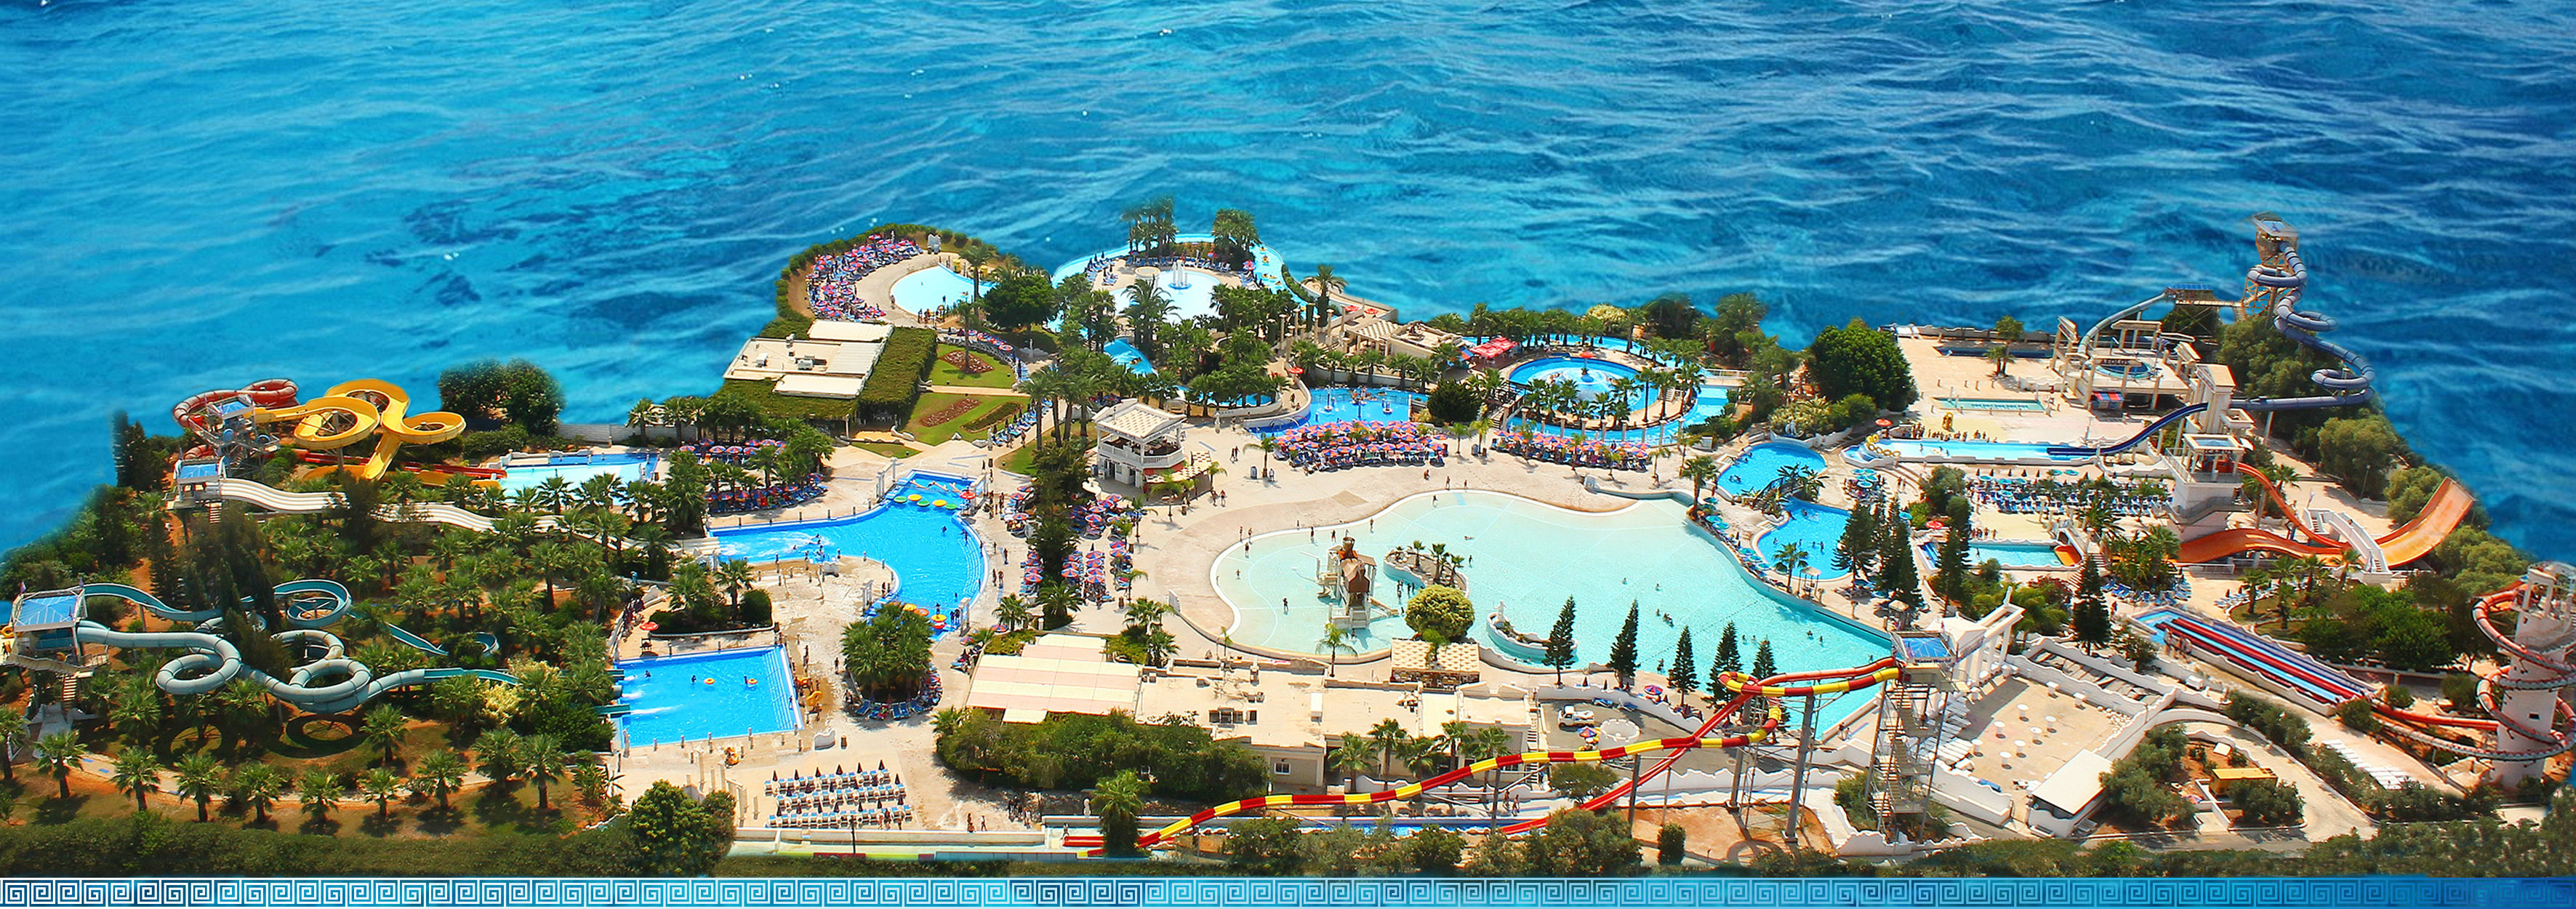 Ayia Napa - resort in Cyprus. Attractions, hotels 48